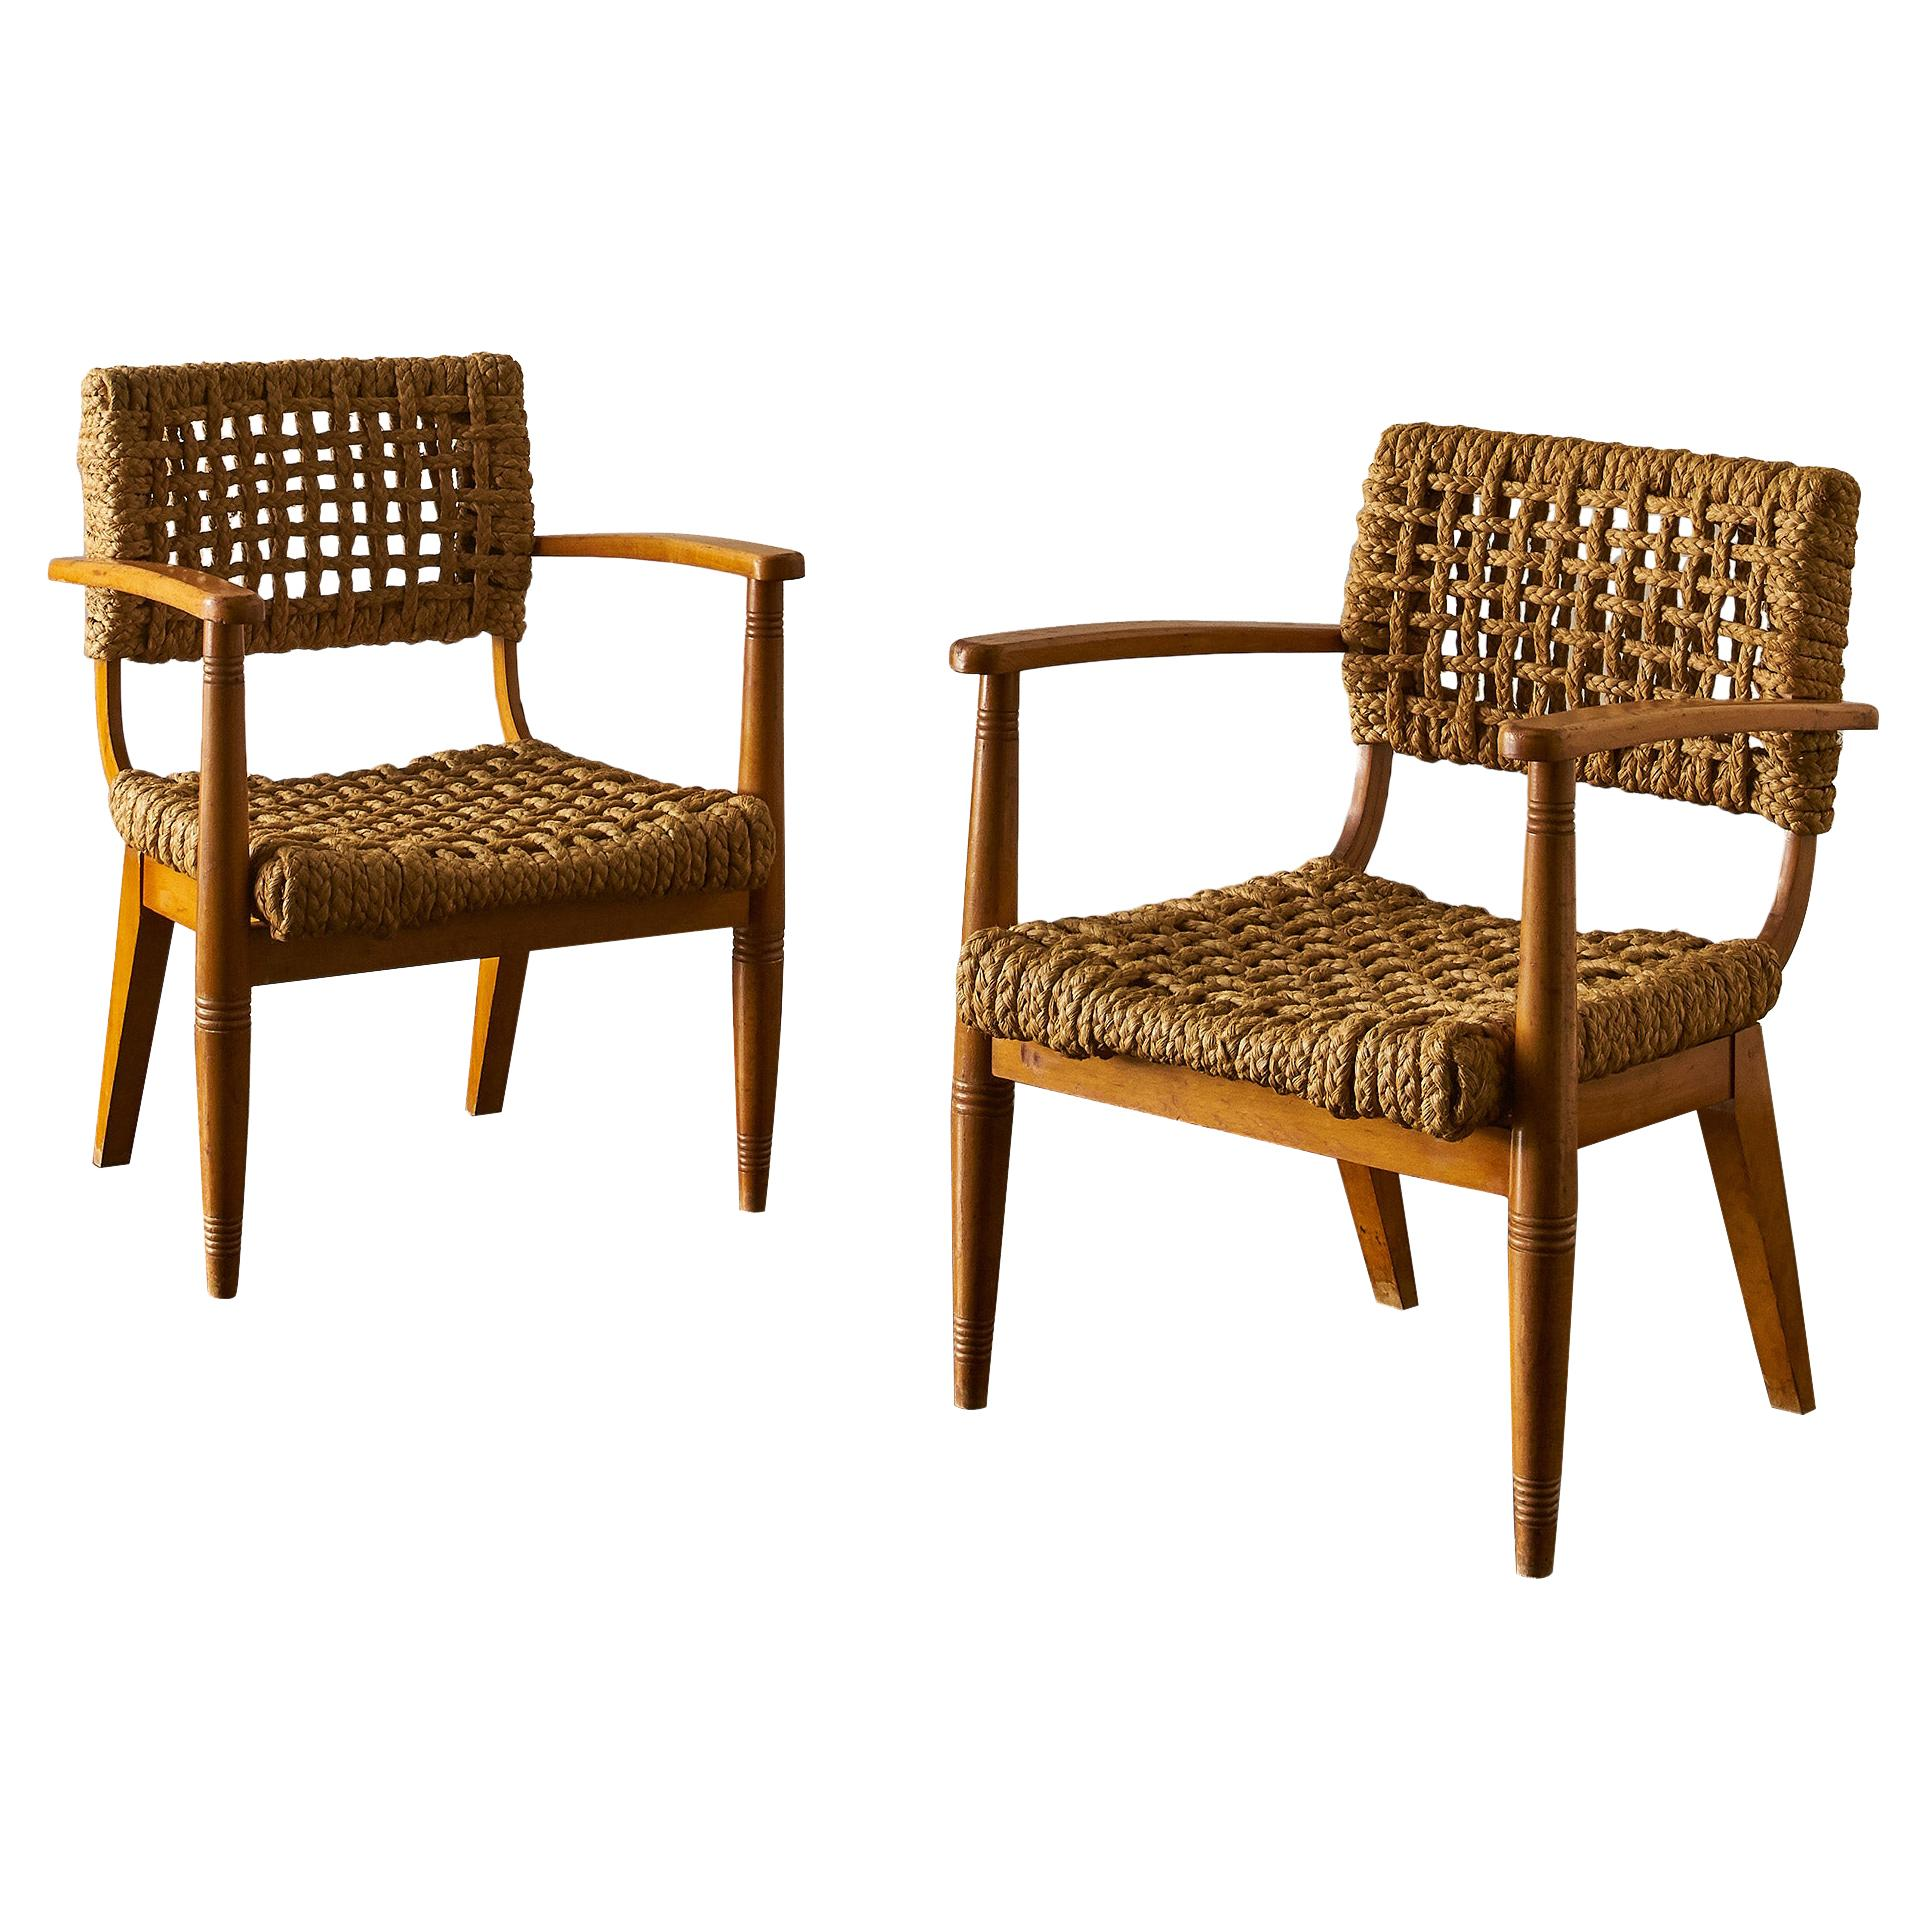 Pair of Rope Lounge Chairs by Adrien Audoux and Frida Minet